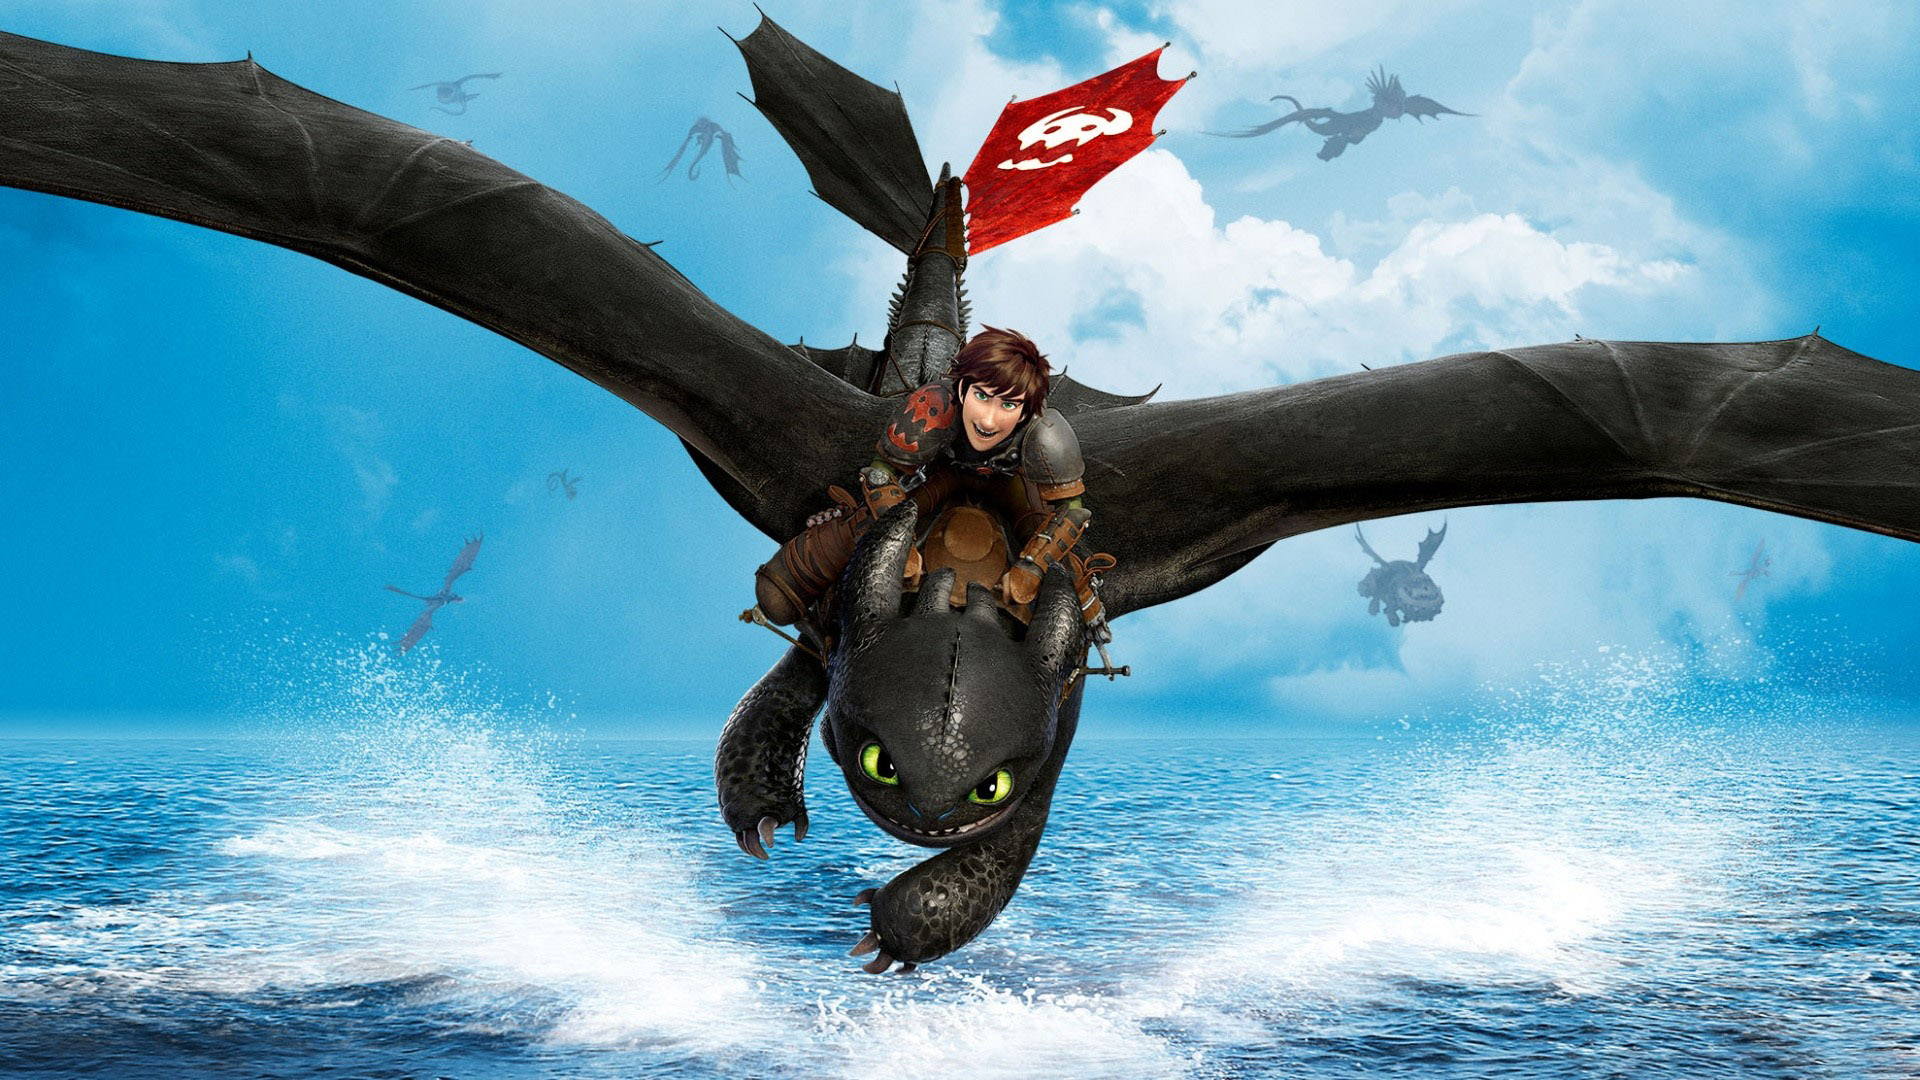 How To Train Your Dragon 2 Wallpaper Full Hd Id2102